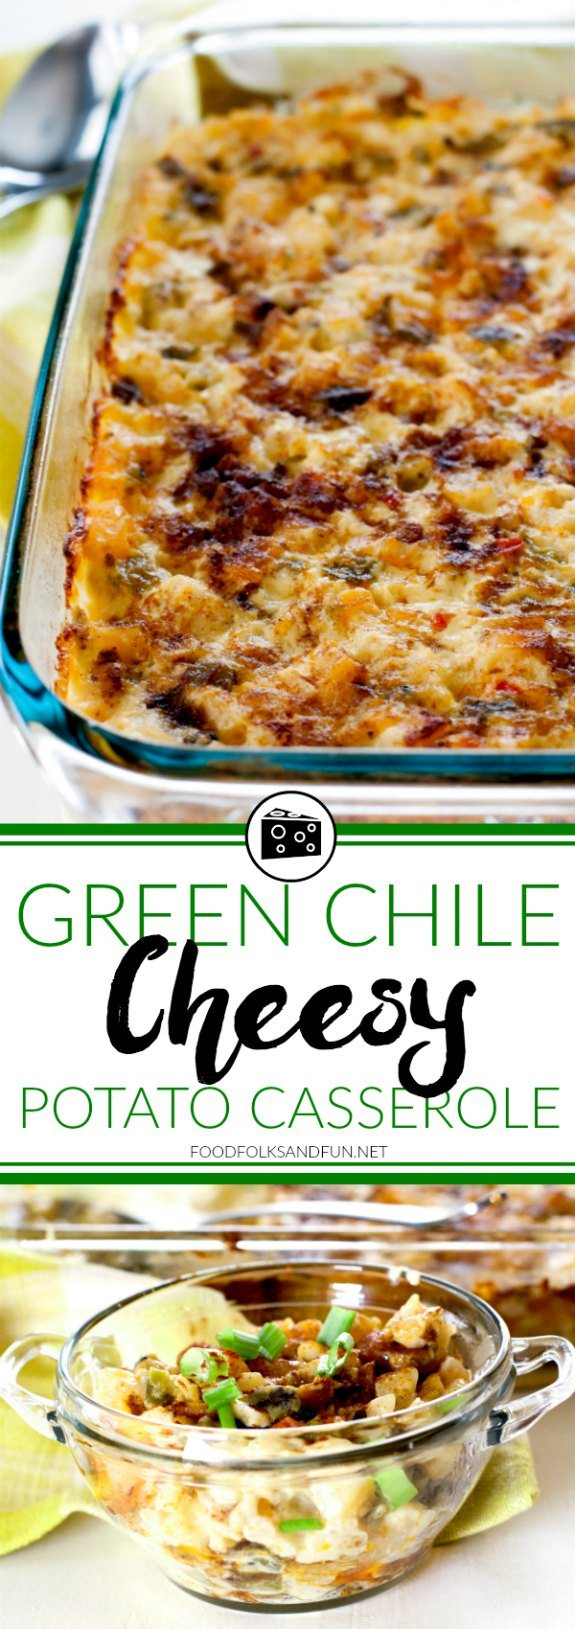 What's better than cheesy potato casserole? Green Chile Cheesy Potato Casserole, of course! This is a simple, delicious, and zesty option to the comfort food classic.